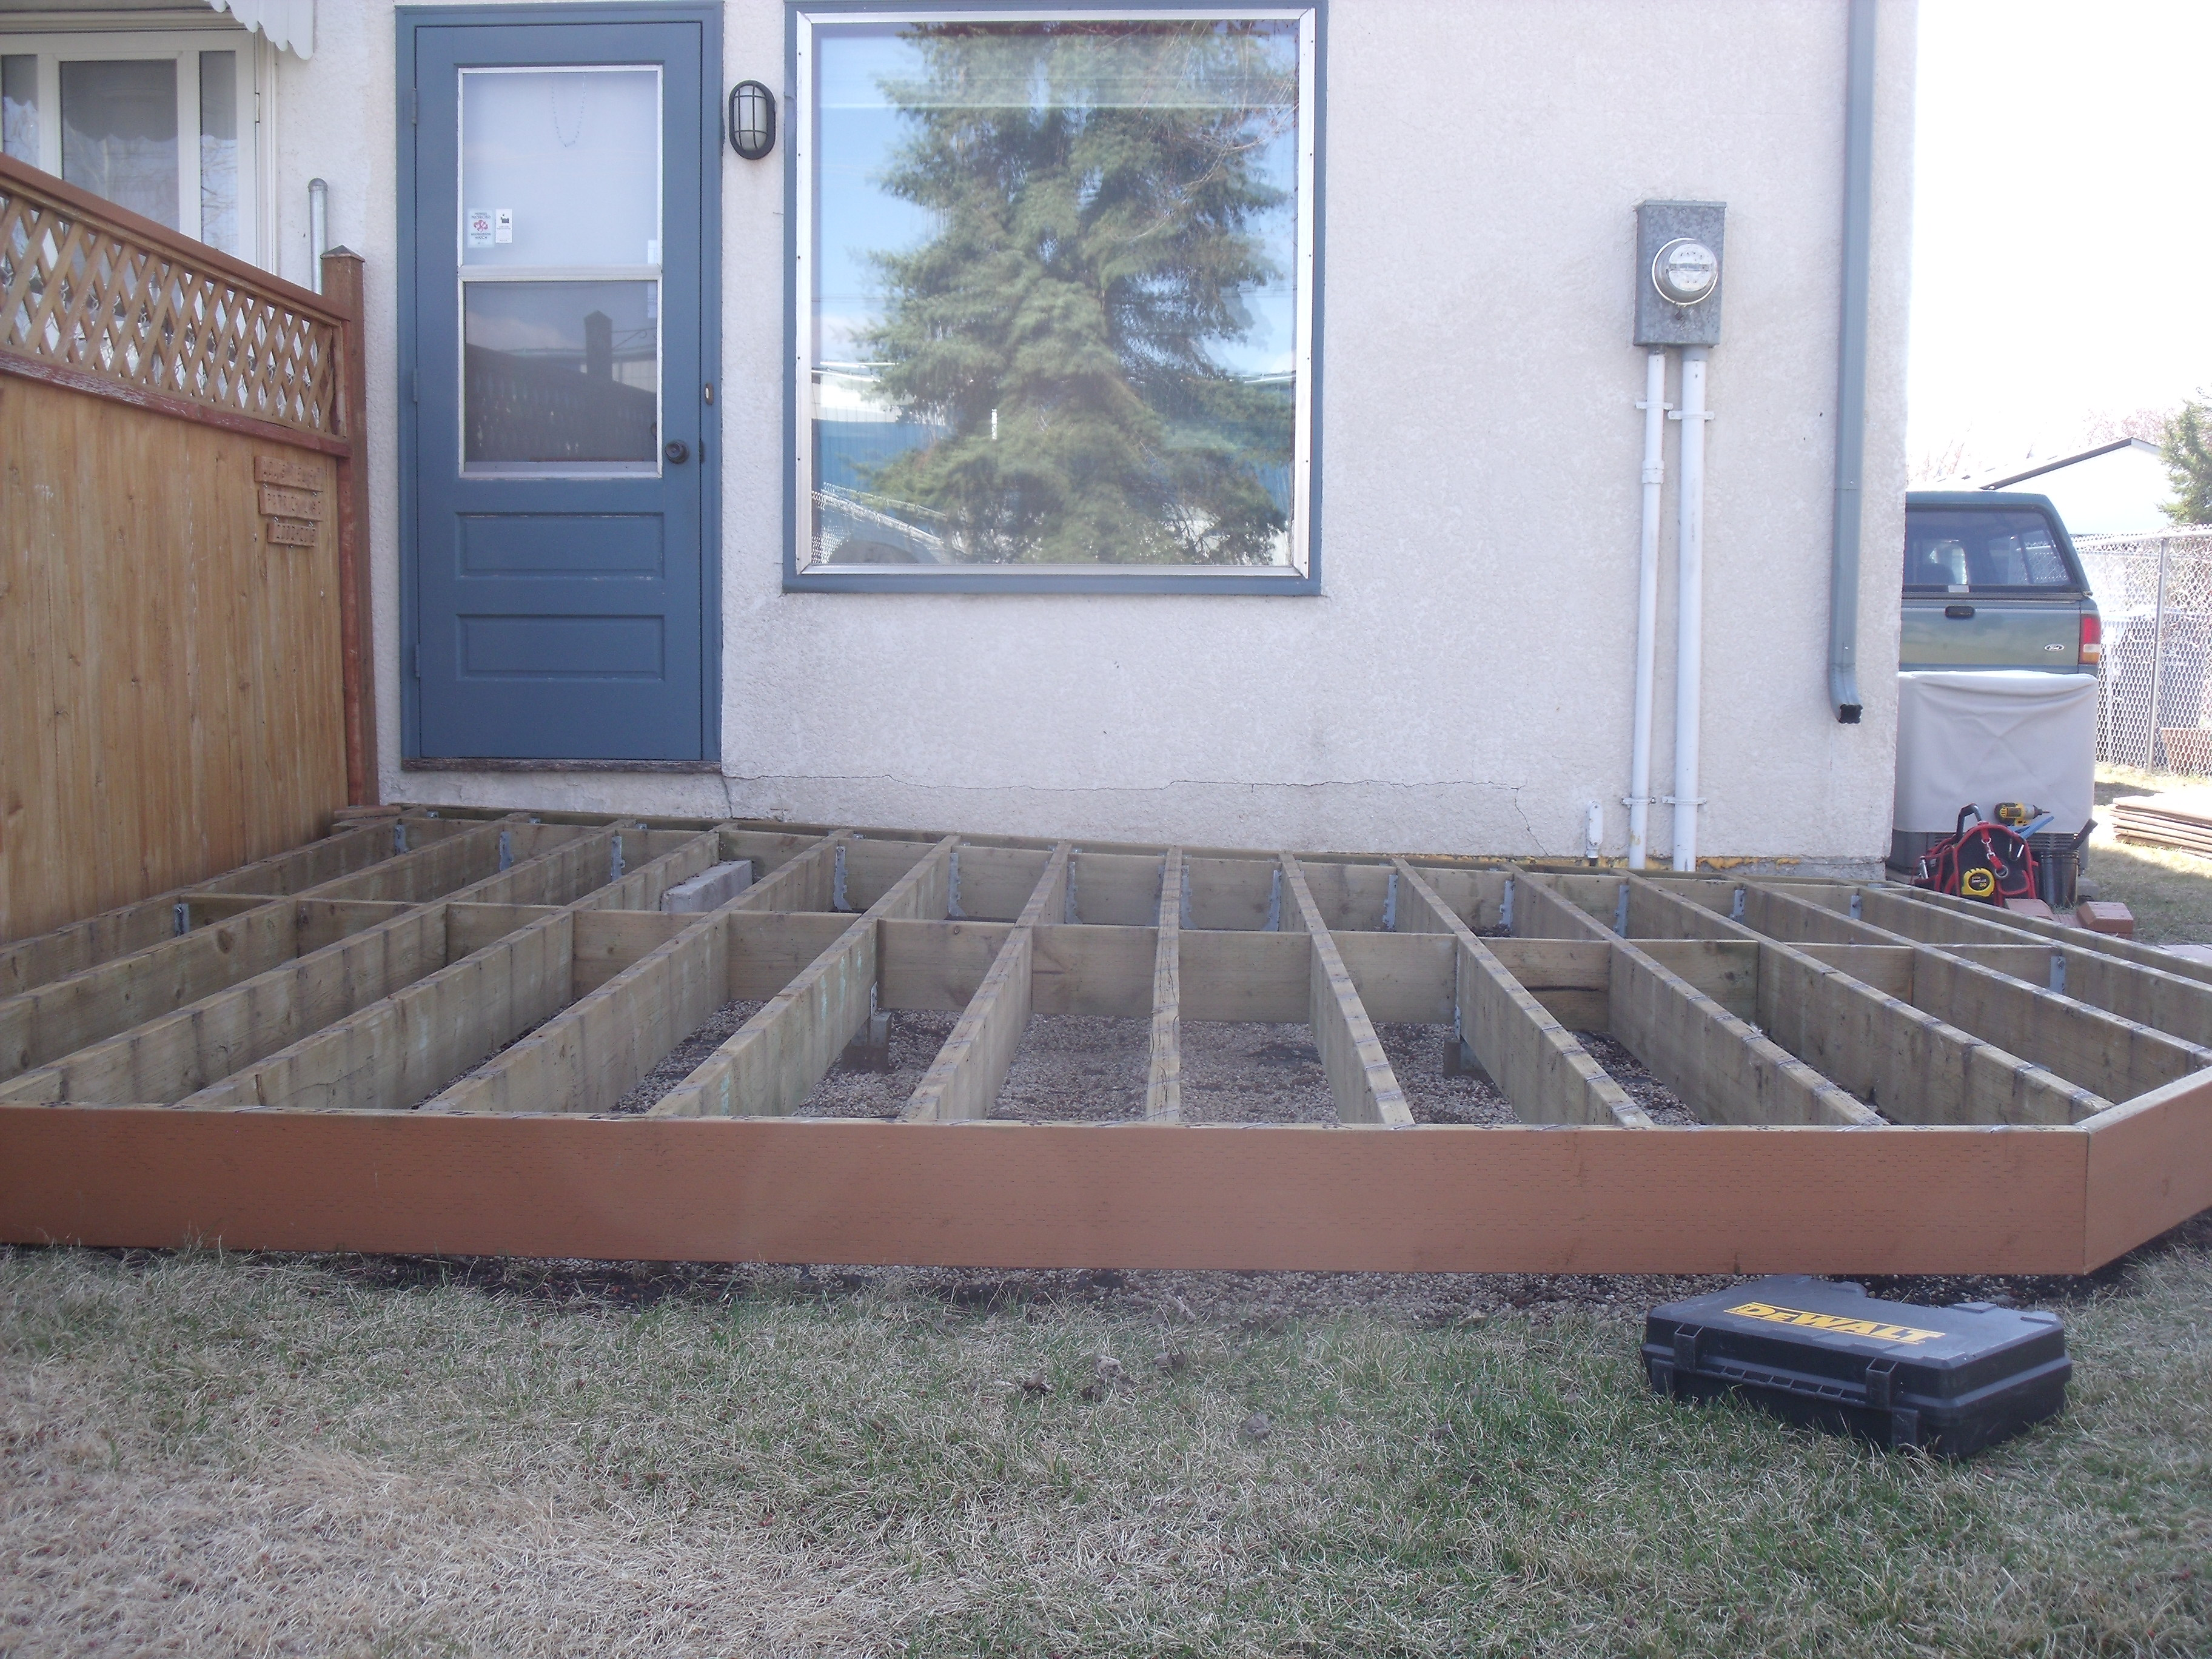 Diy customer builds low deck like a pro on postech screw piles determined to rebuild a solid deck that would last for many years to come patrick came across postech screw piles and decided to give us a call solutioingenieria Image collections